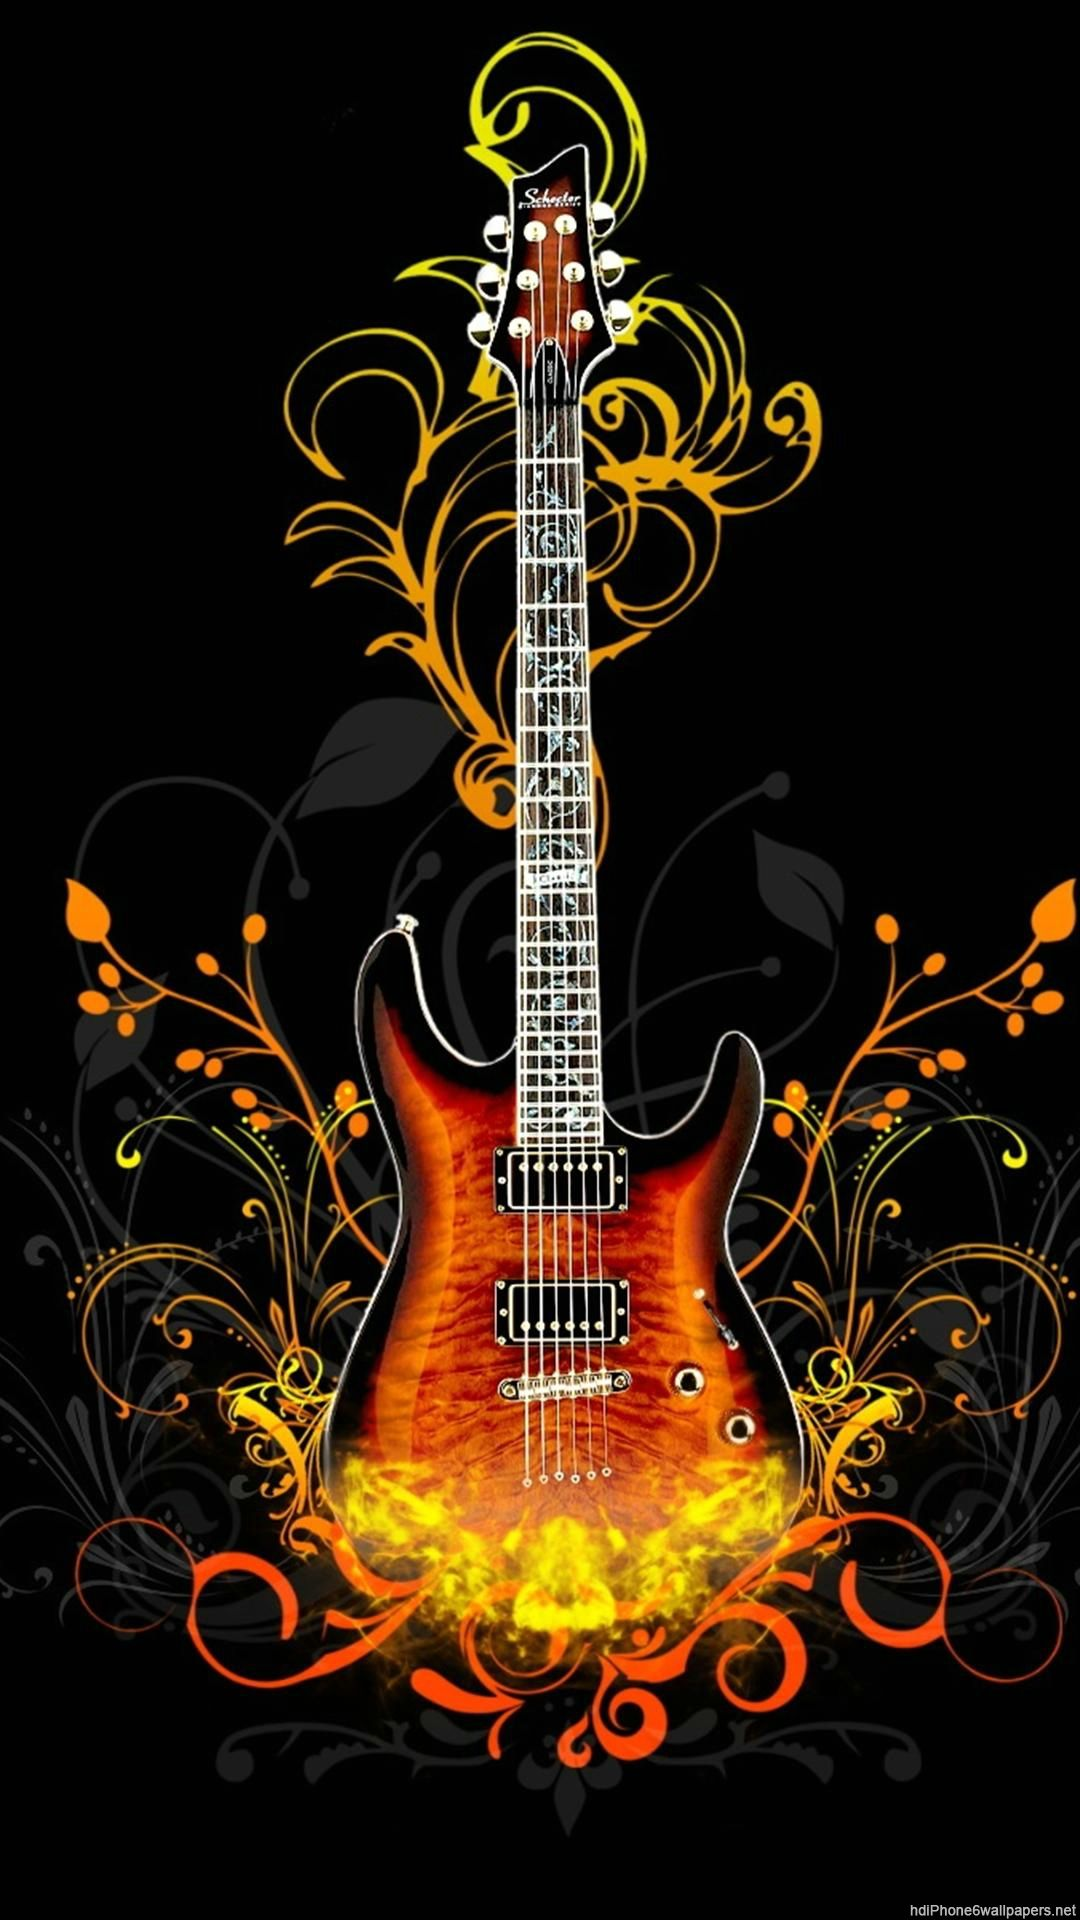 Violao Flamejante Wallpapers Mobile Pinterest Guitar Wallpaper Iphone Guitar Art Music Wallpaper